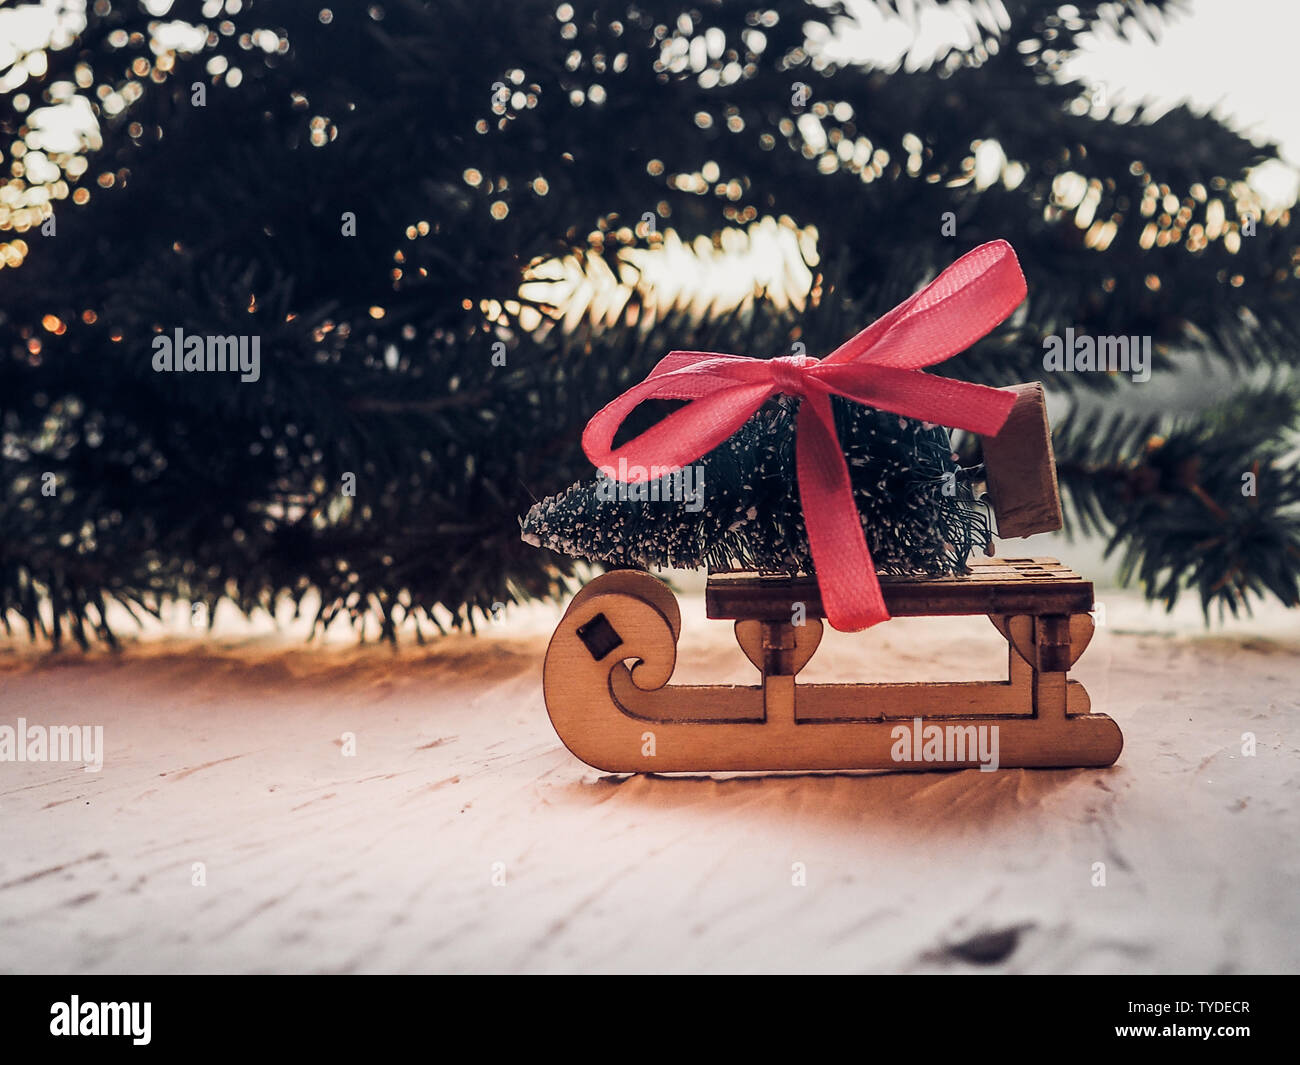 Gifts For Christmas On Wooden Sled Merry Christmas Tree Transporter